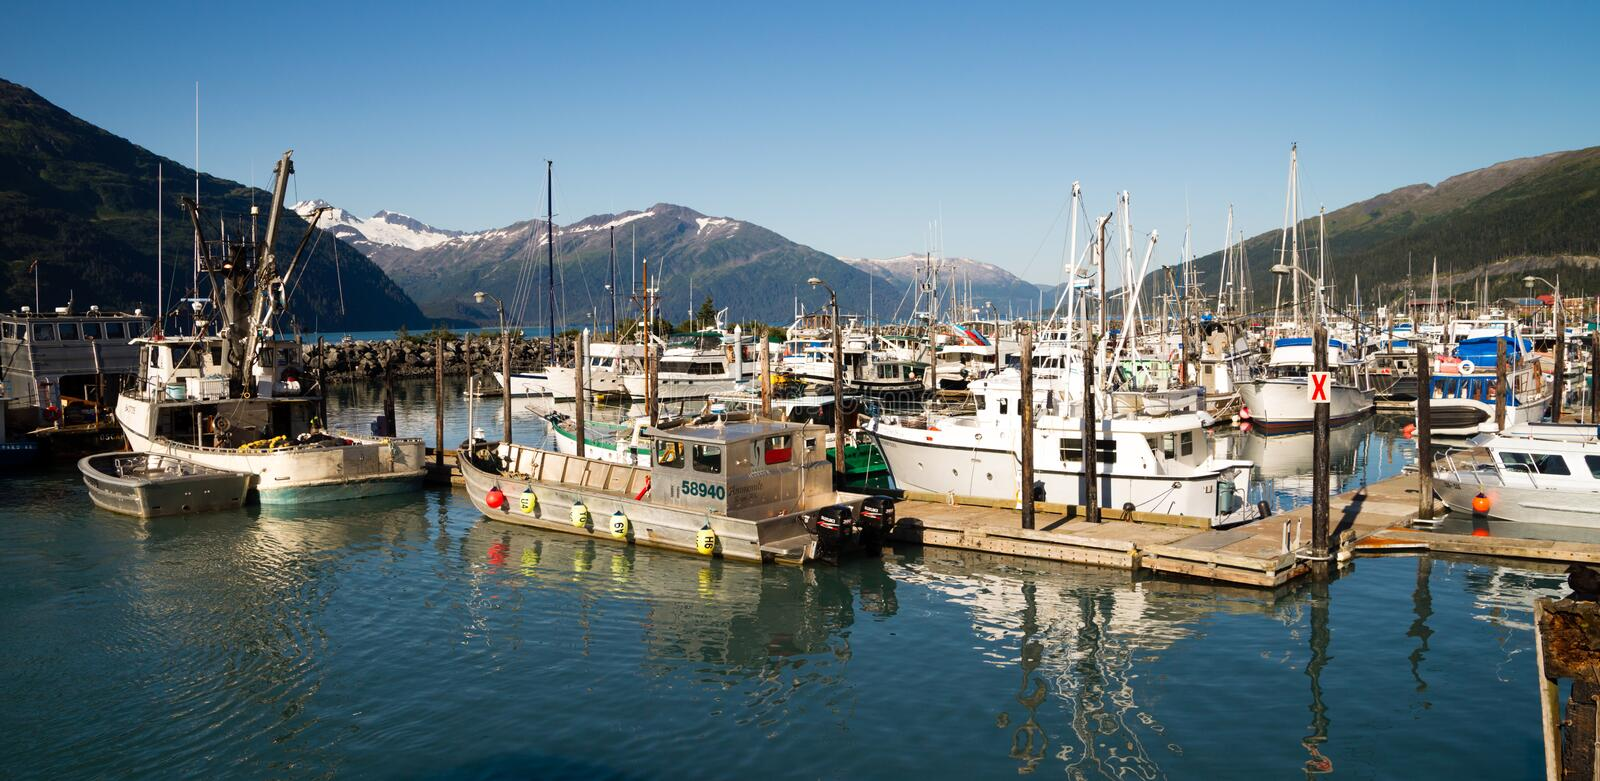 Whittier, Alaska/United States – August, 5: Boats are moored a. T the marina and are very protected in this harbor surrounded by mountains on 08/20/15 in royalty free stock images